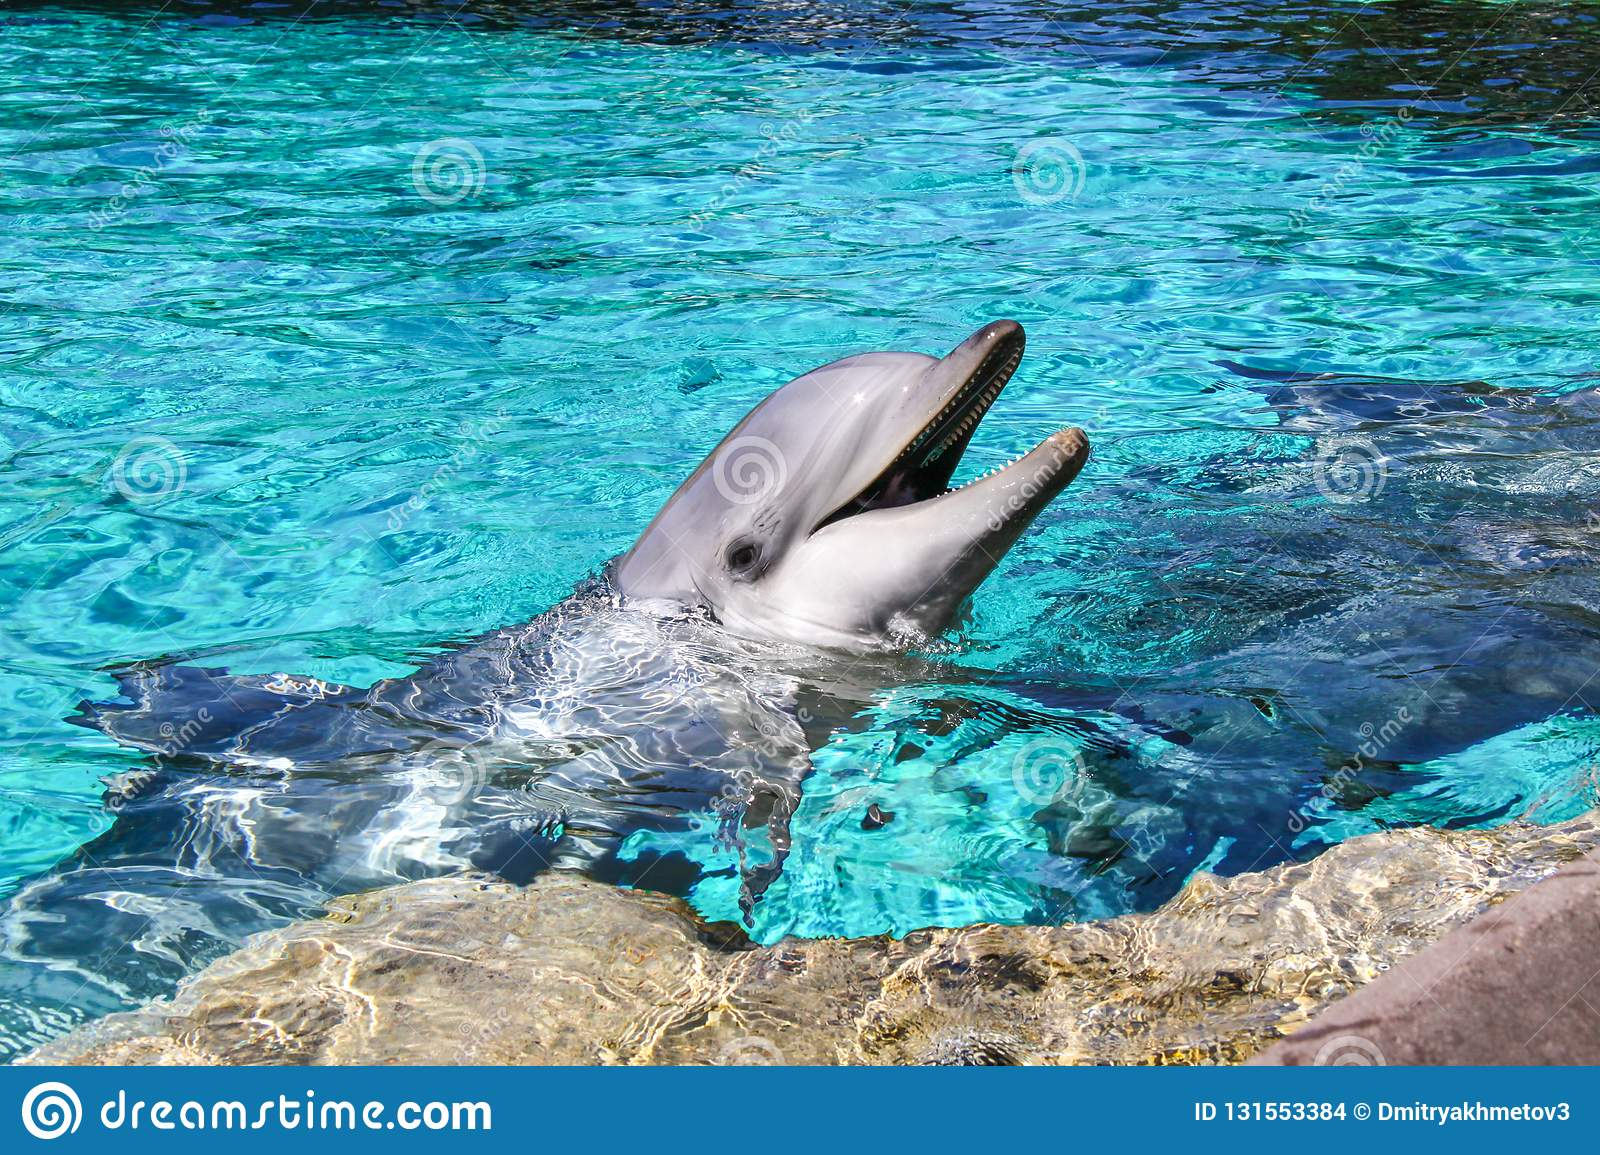 Portrait of a common bottlenose dolphin in a pool